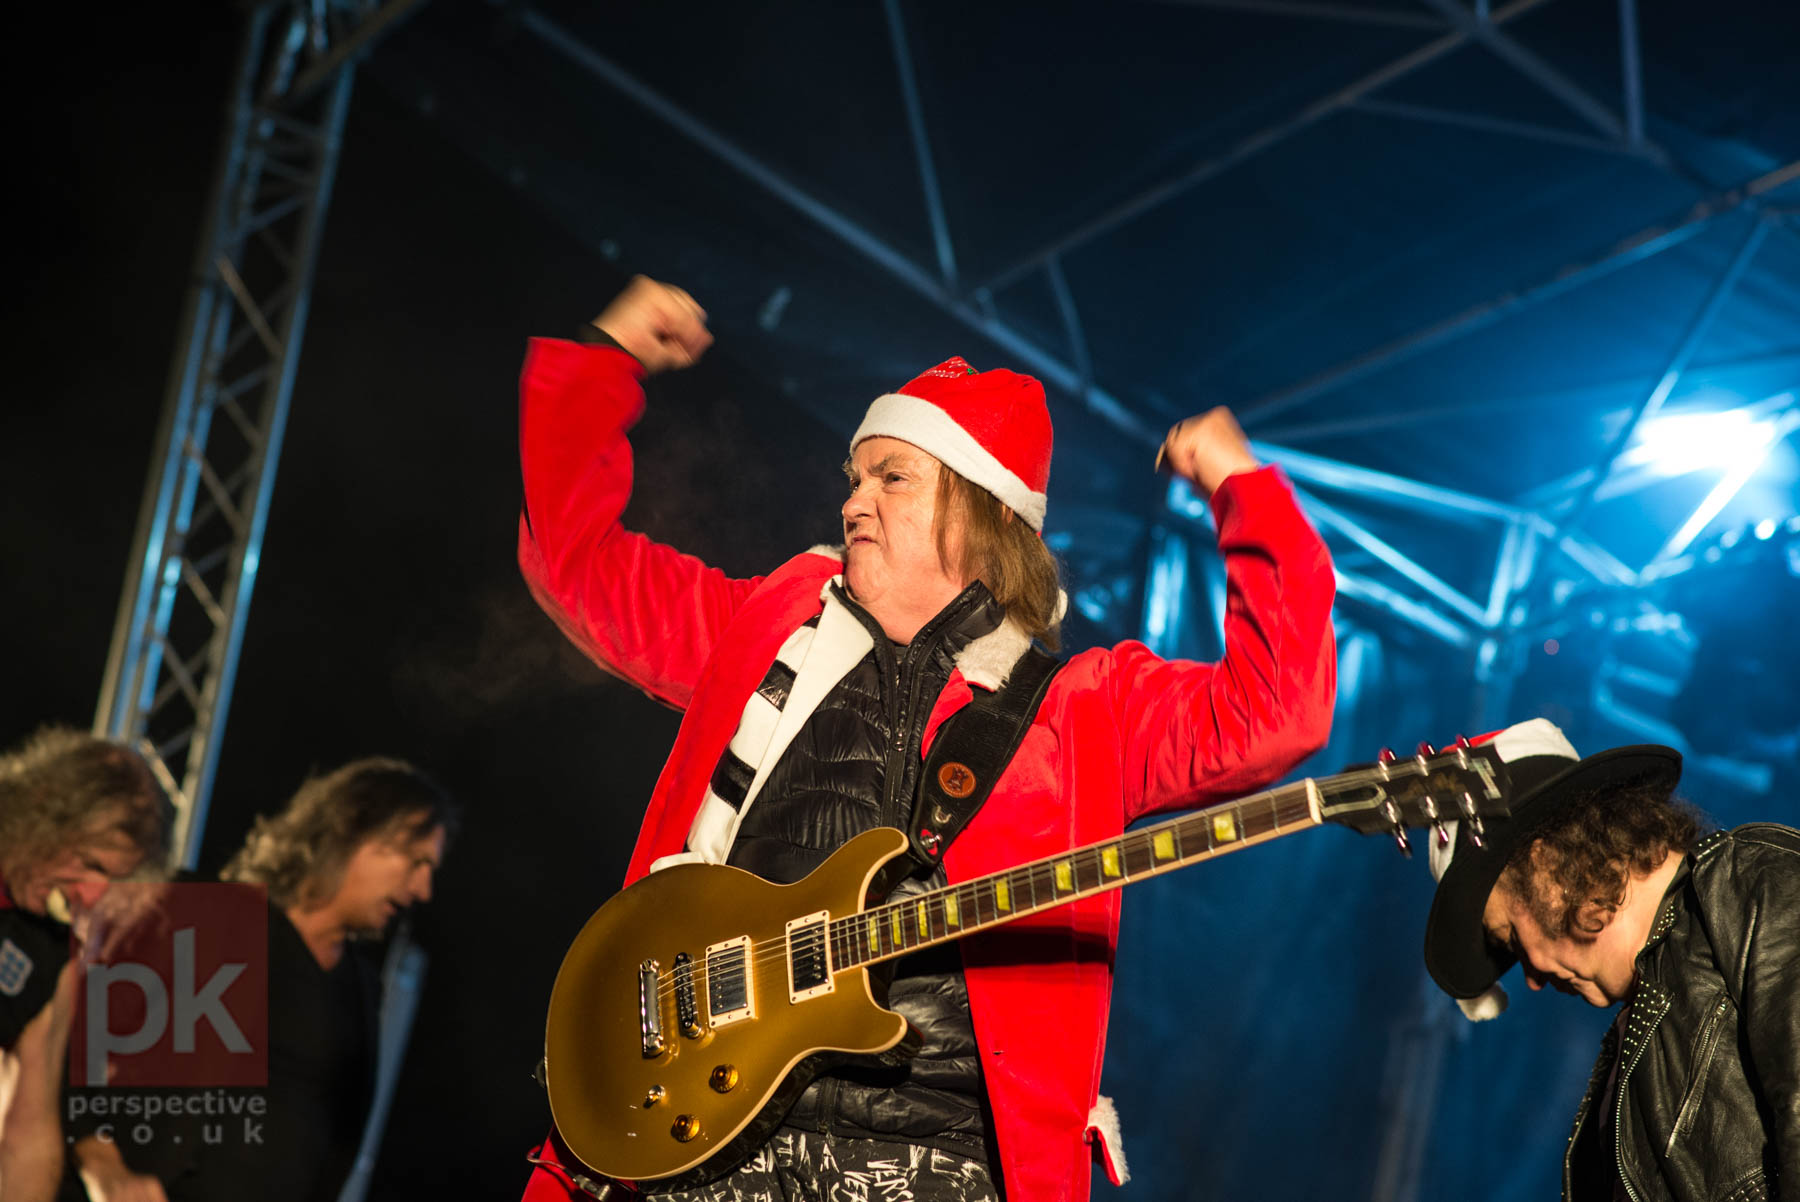 The might SLADE getting everyone in Perth into the Christmas spirit at the official Light Switch On event.